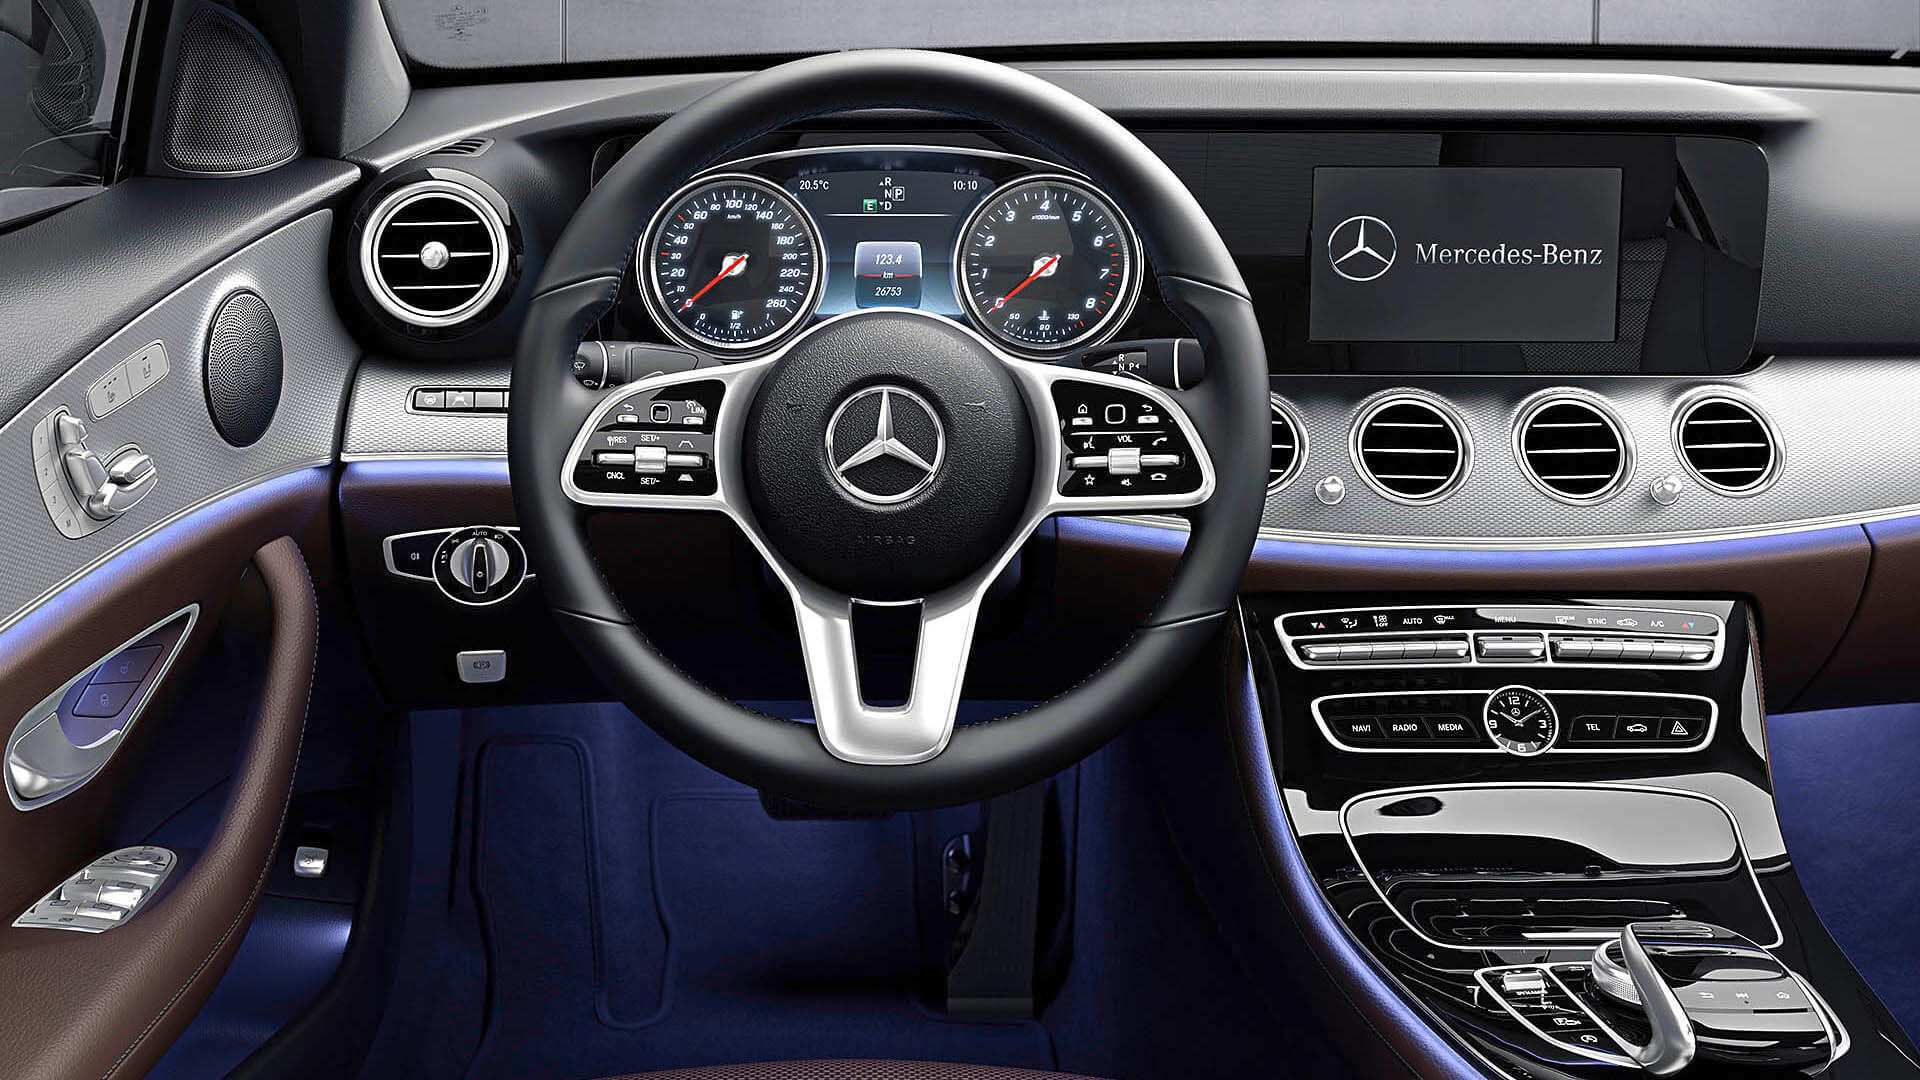 33 The Best Mercedes E Klasse 2019 Price And Review